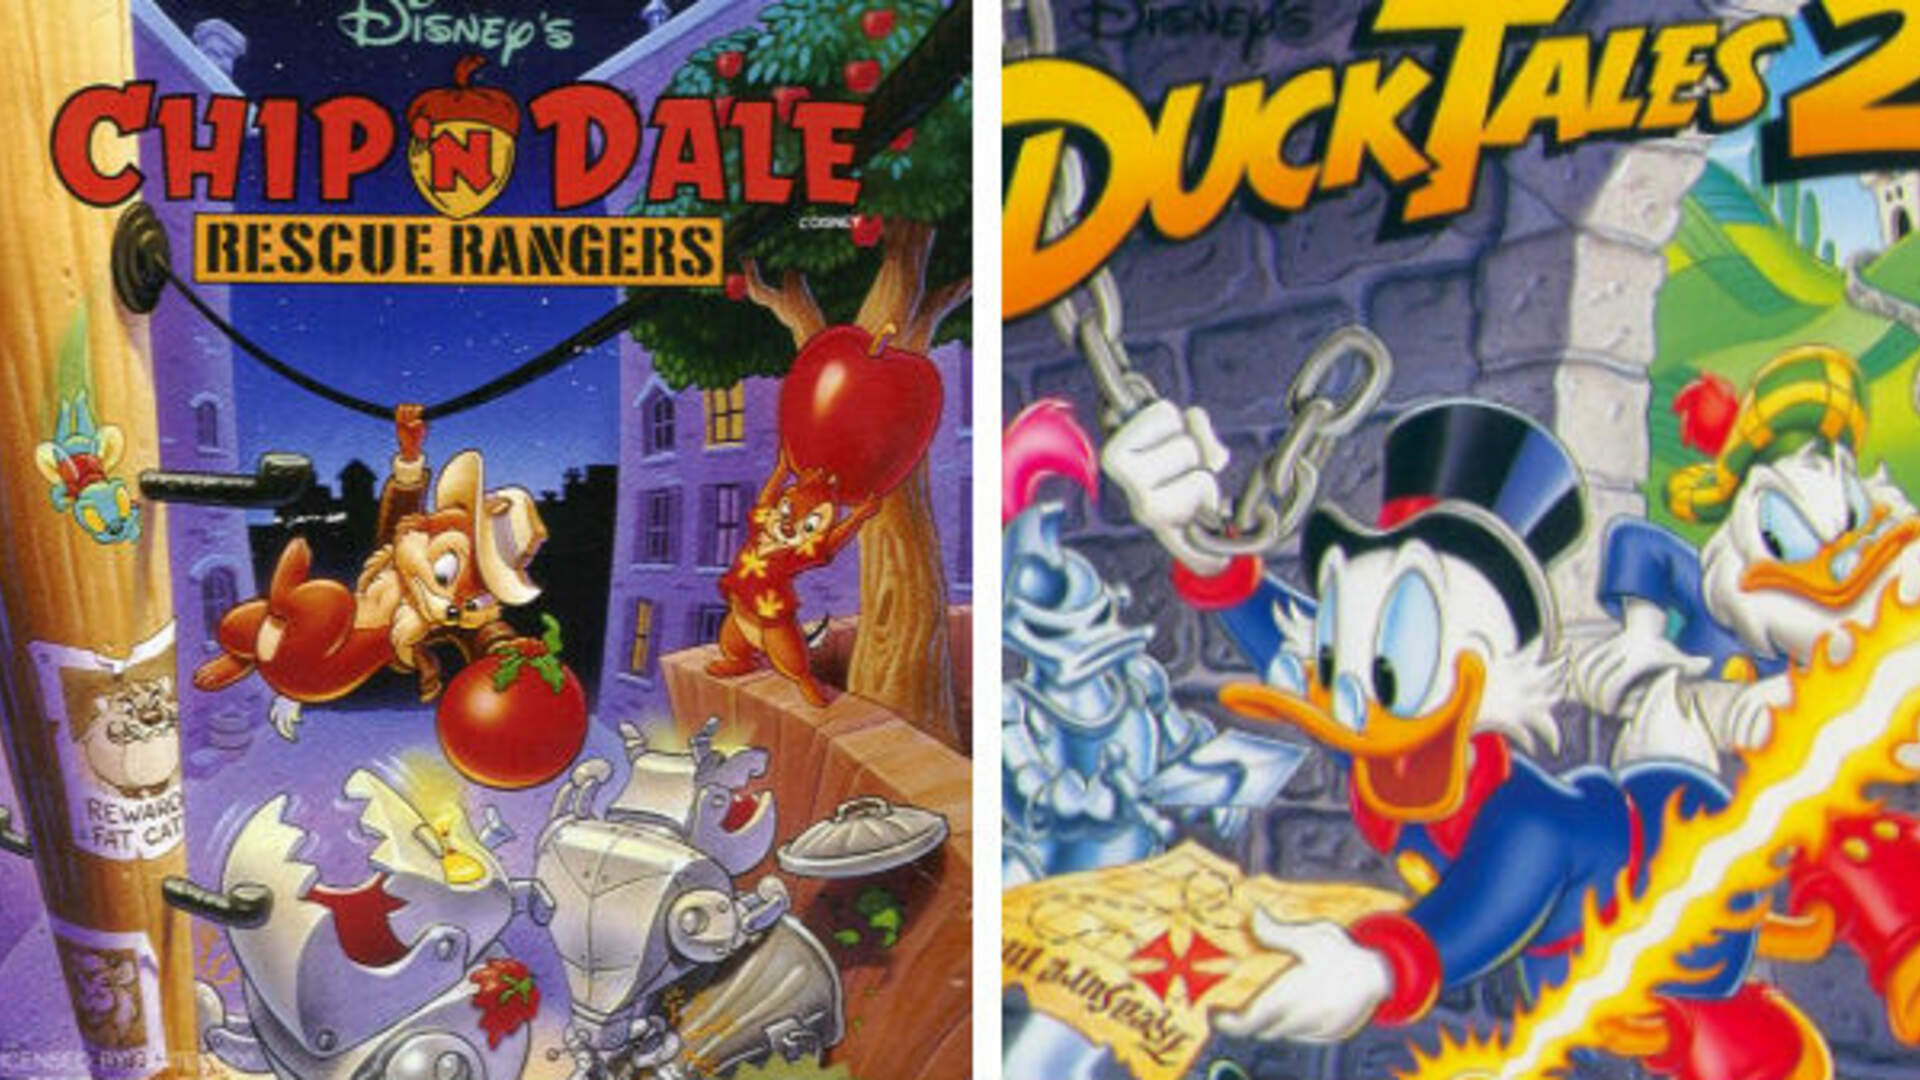 Ranking The Disney Afternoon Collection's Games from Best to Worst